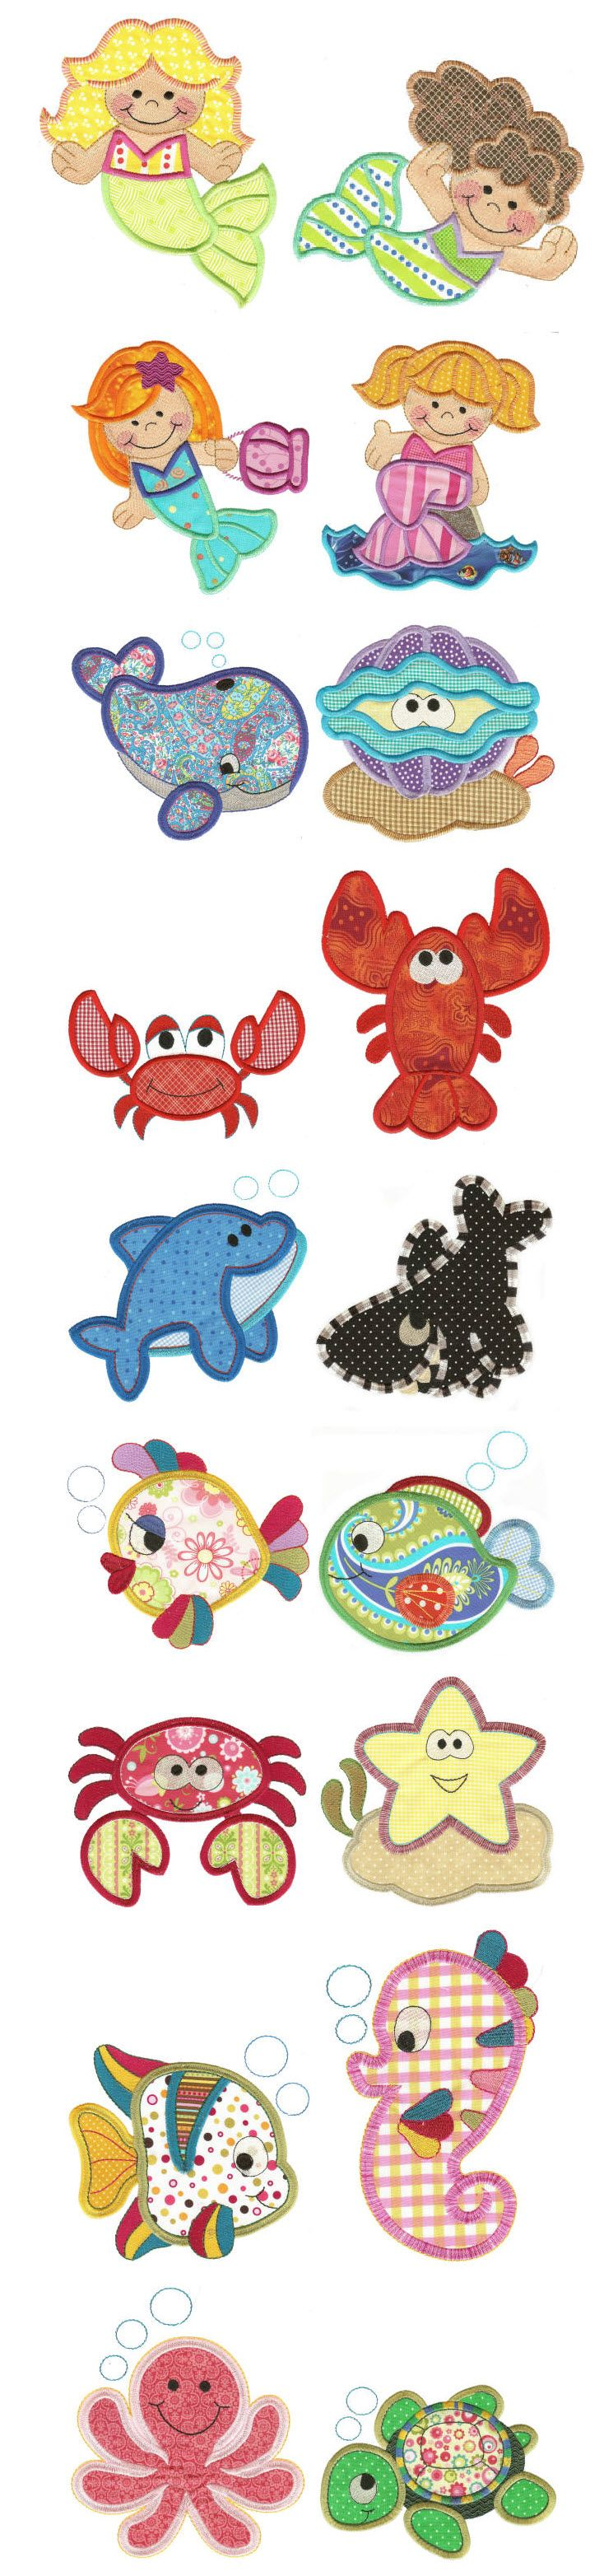 Embroidery | Free Machine Embroidery Designs | Jumbo Under the Sea Applique